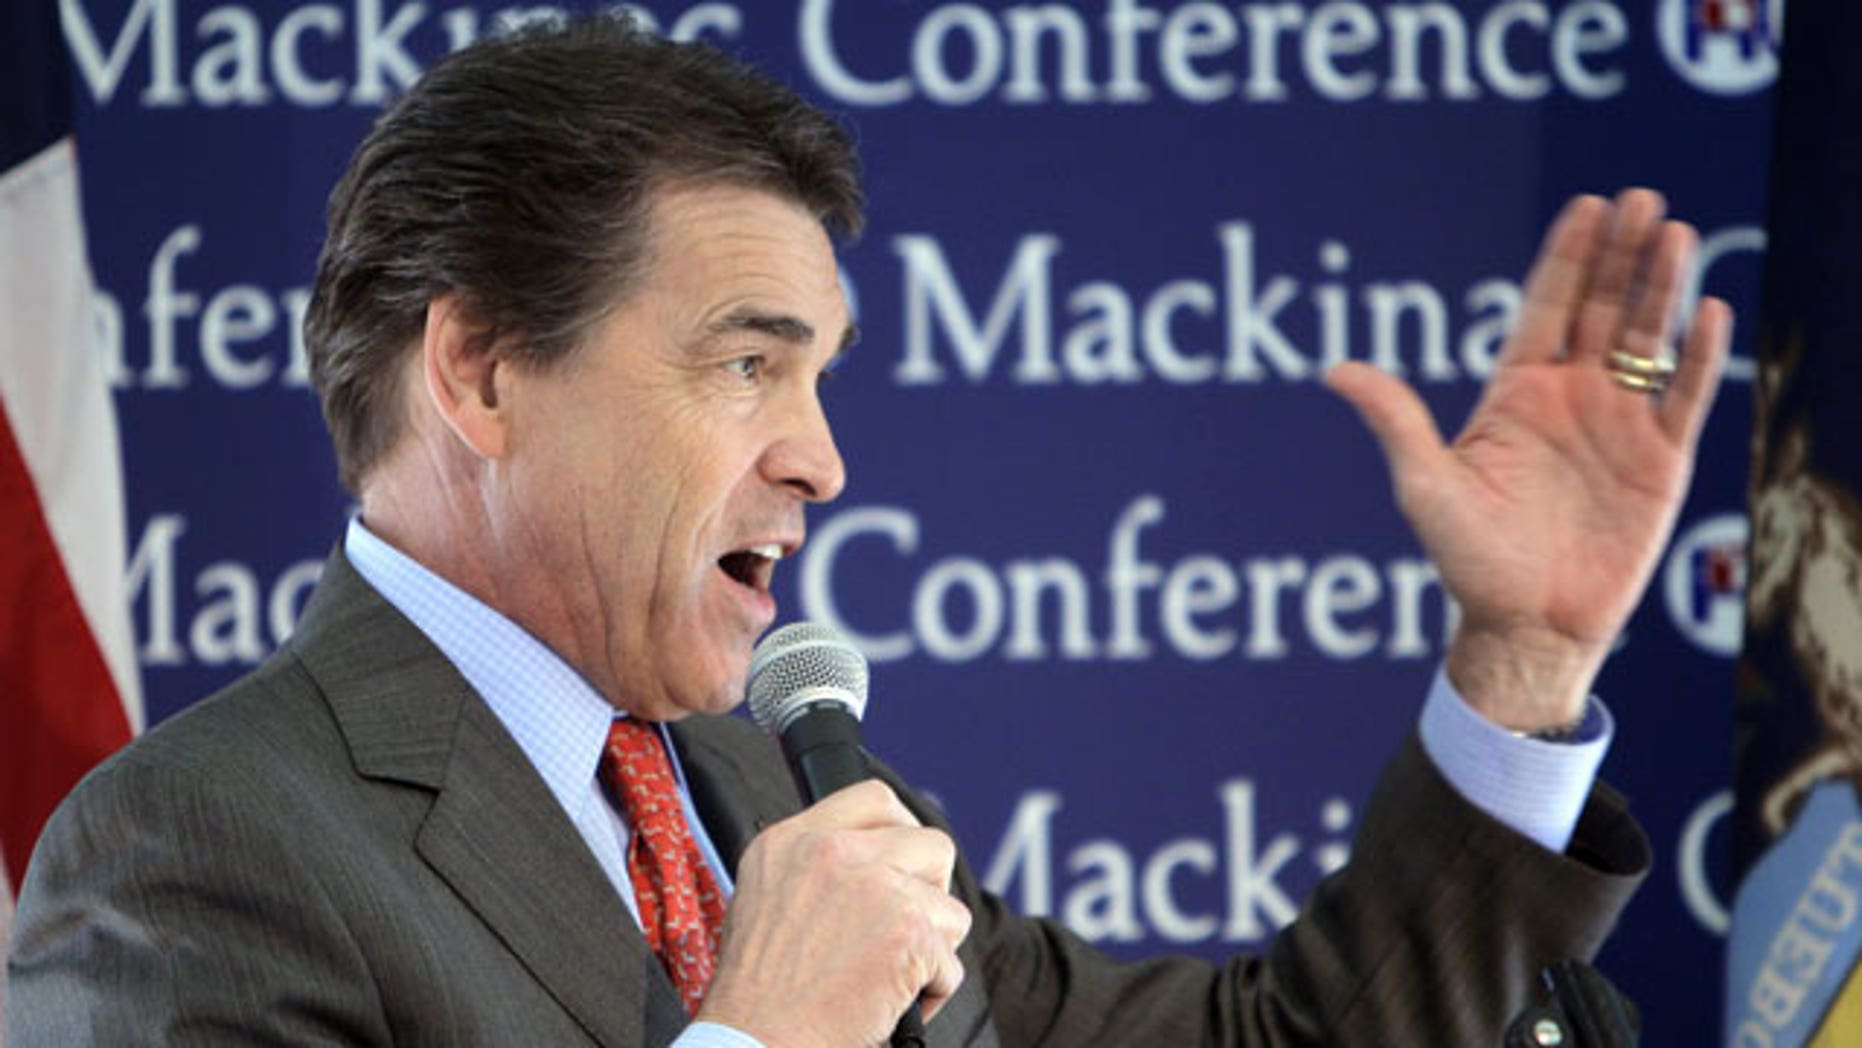 September 24: Republican presidential candidate Texas Gov. Rick Perry addresses the Republican Leadership Conference at the Grand Hotel on Mackinac Island, Mich.